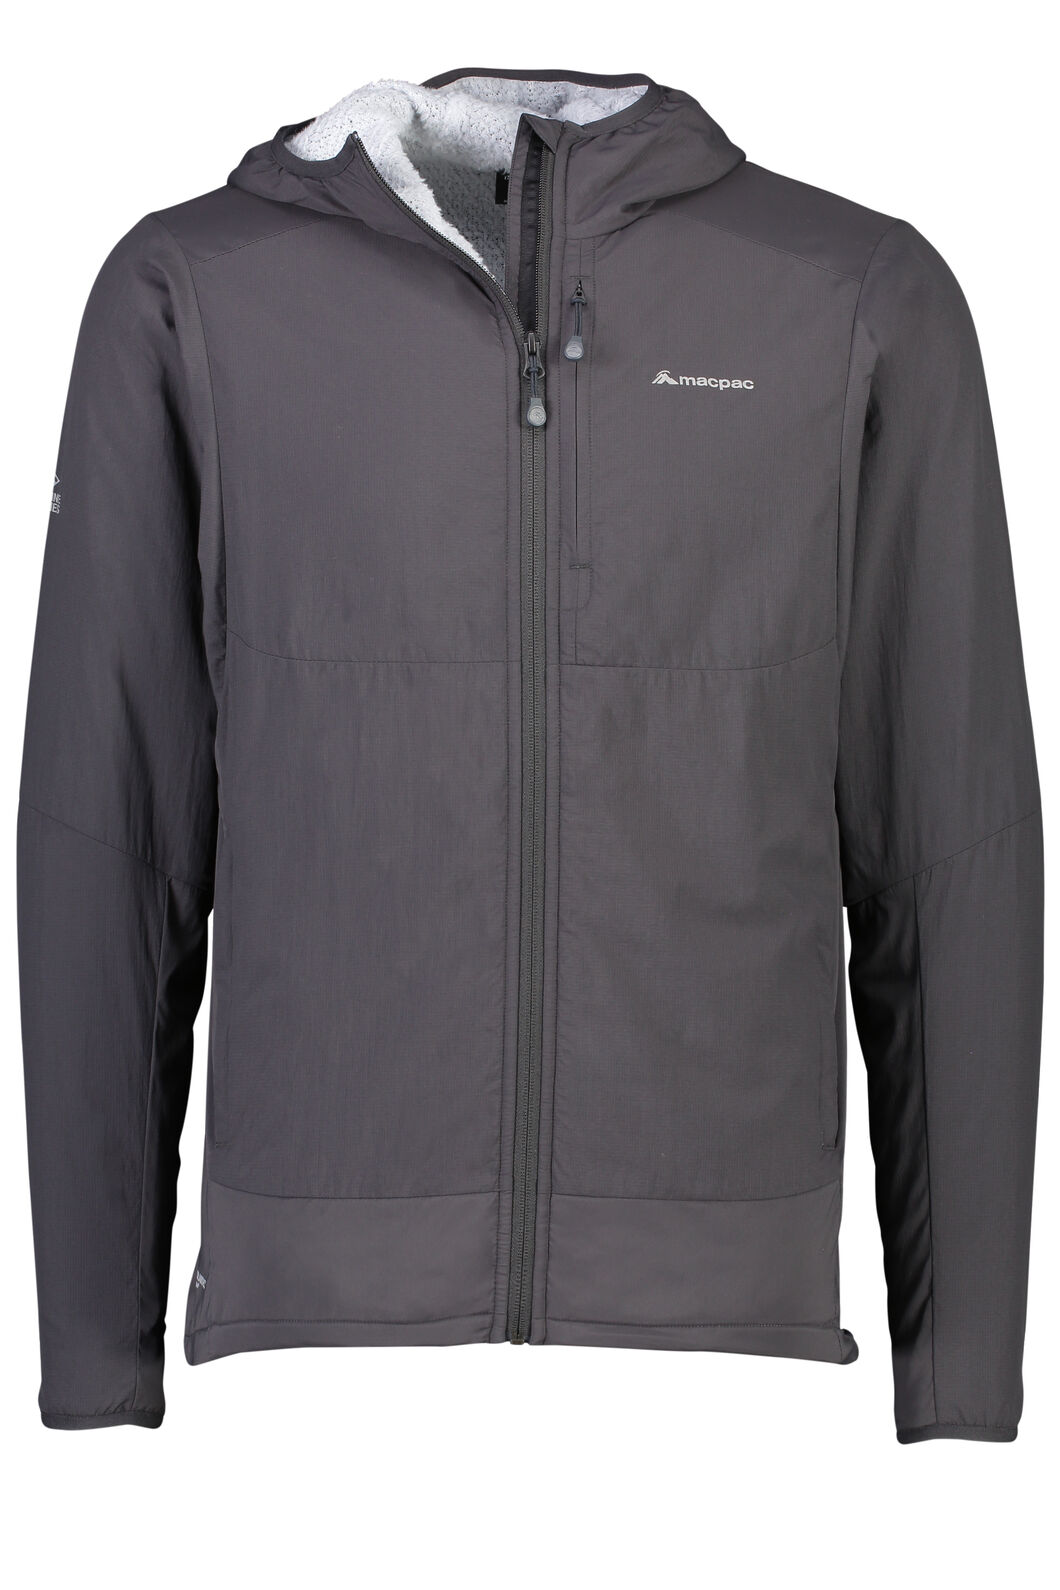 Pisa Polartec® Hooded Jacket - Men's, Phantom, hi-res